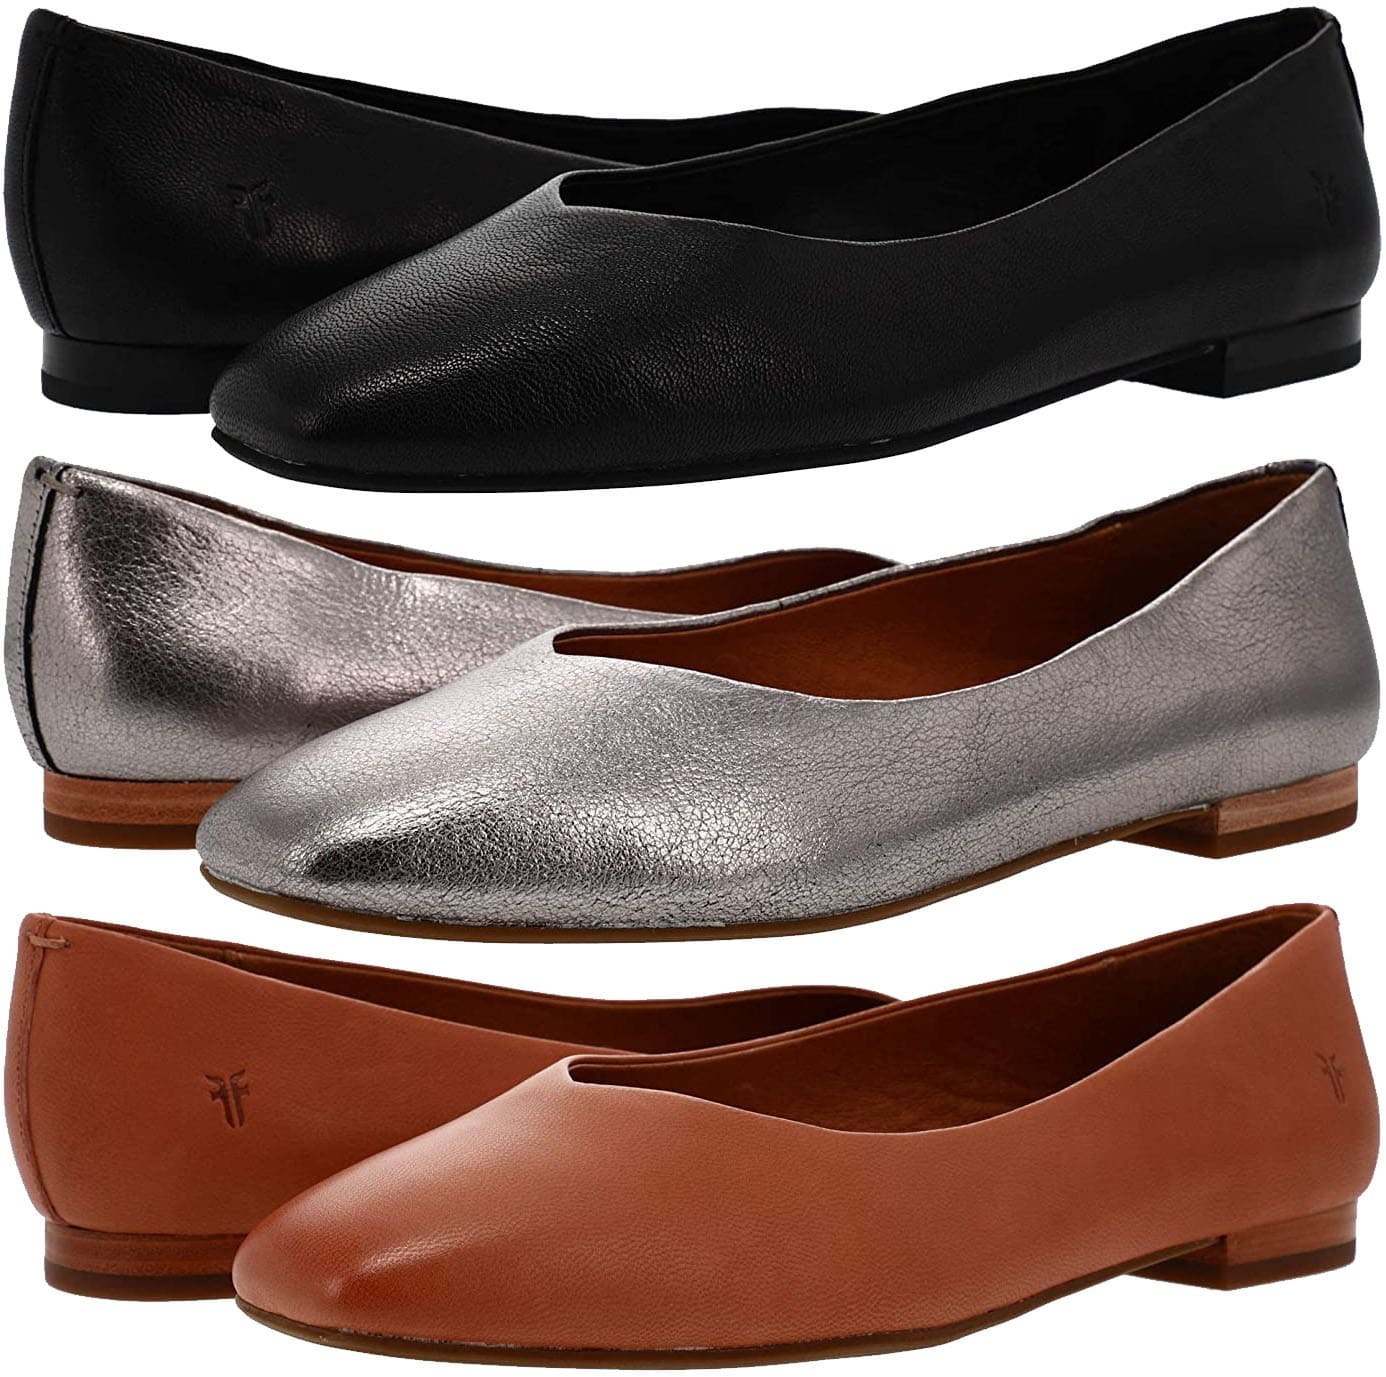 The Frye Dana features a classic slip-on style with well bedded footbed for all day wear